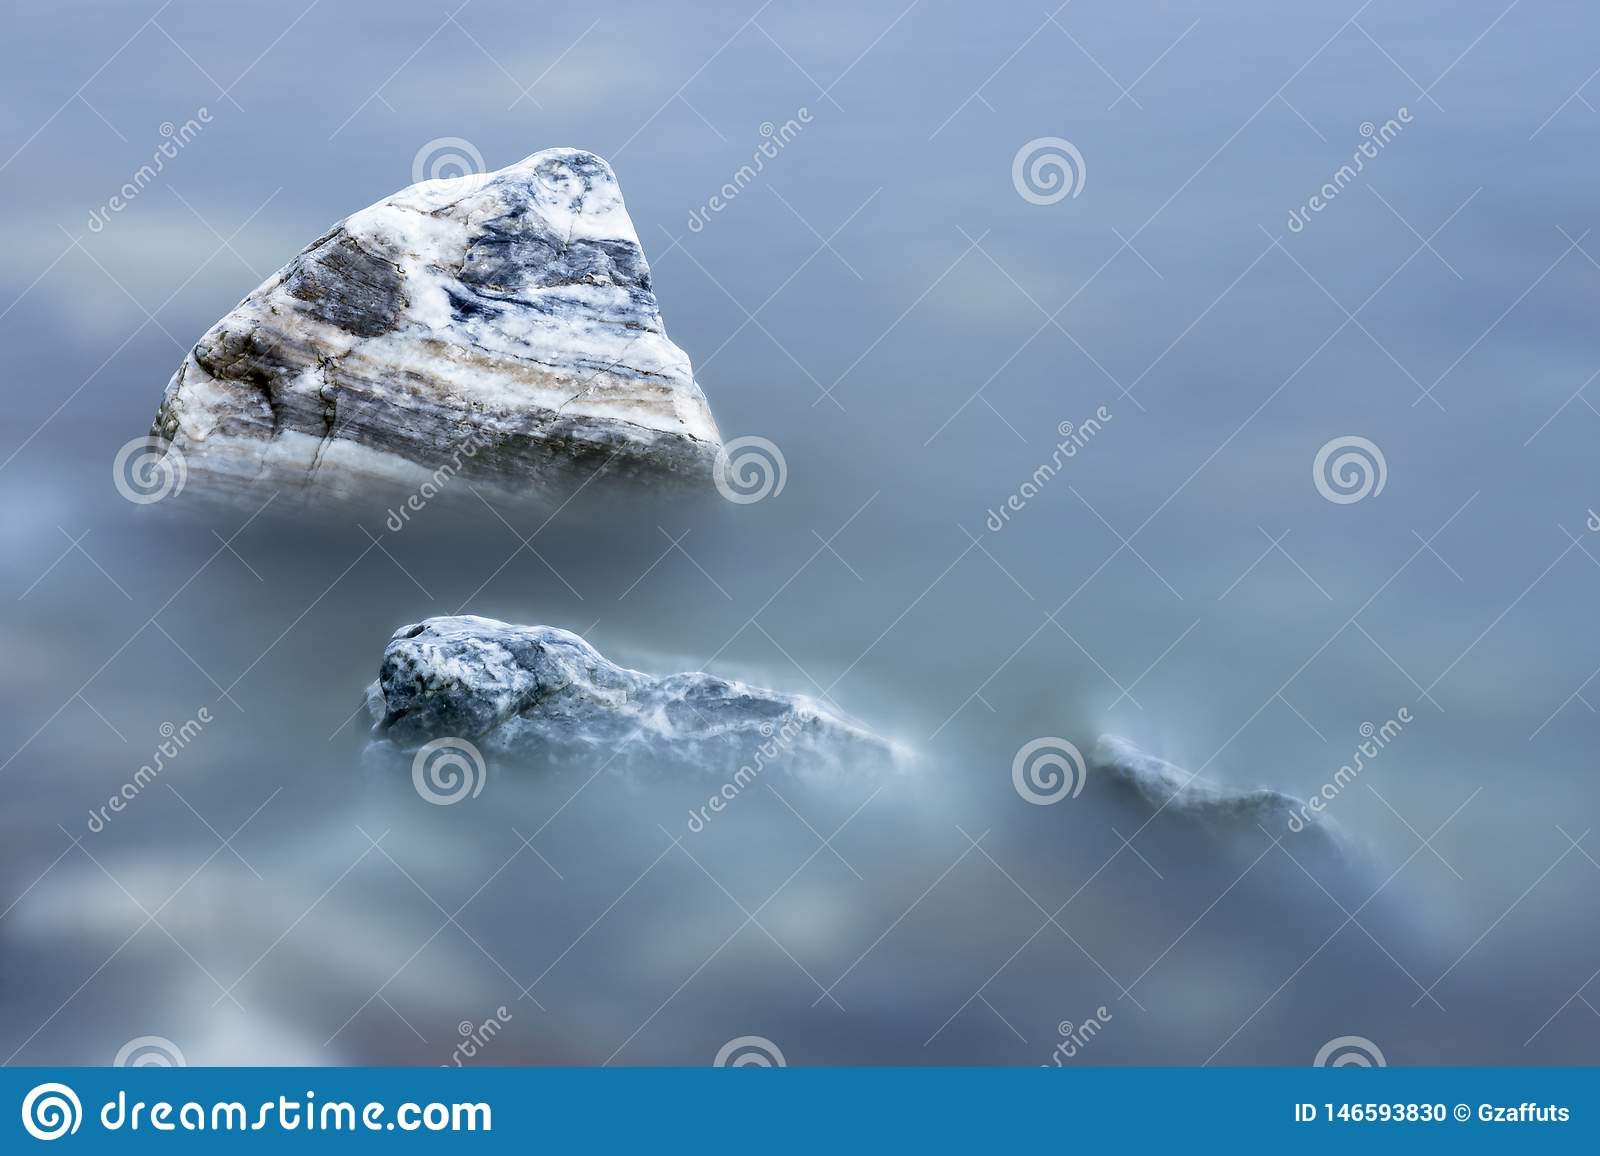 Striped rocks in smooth blue water